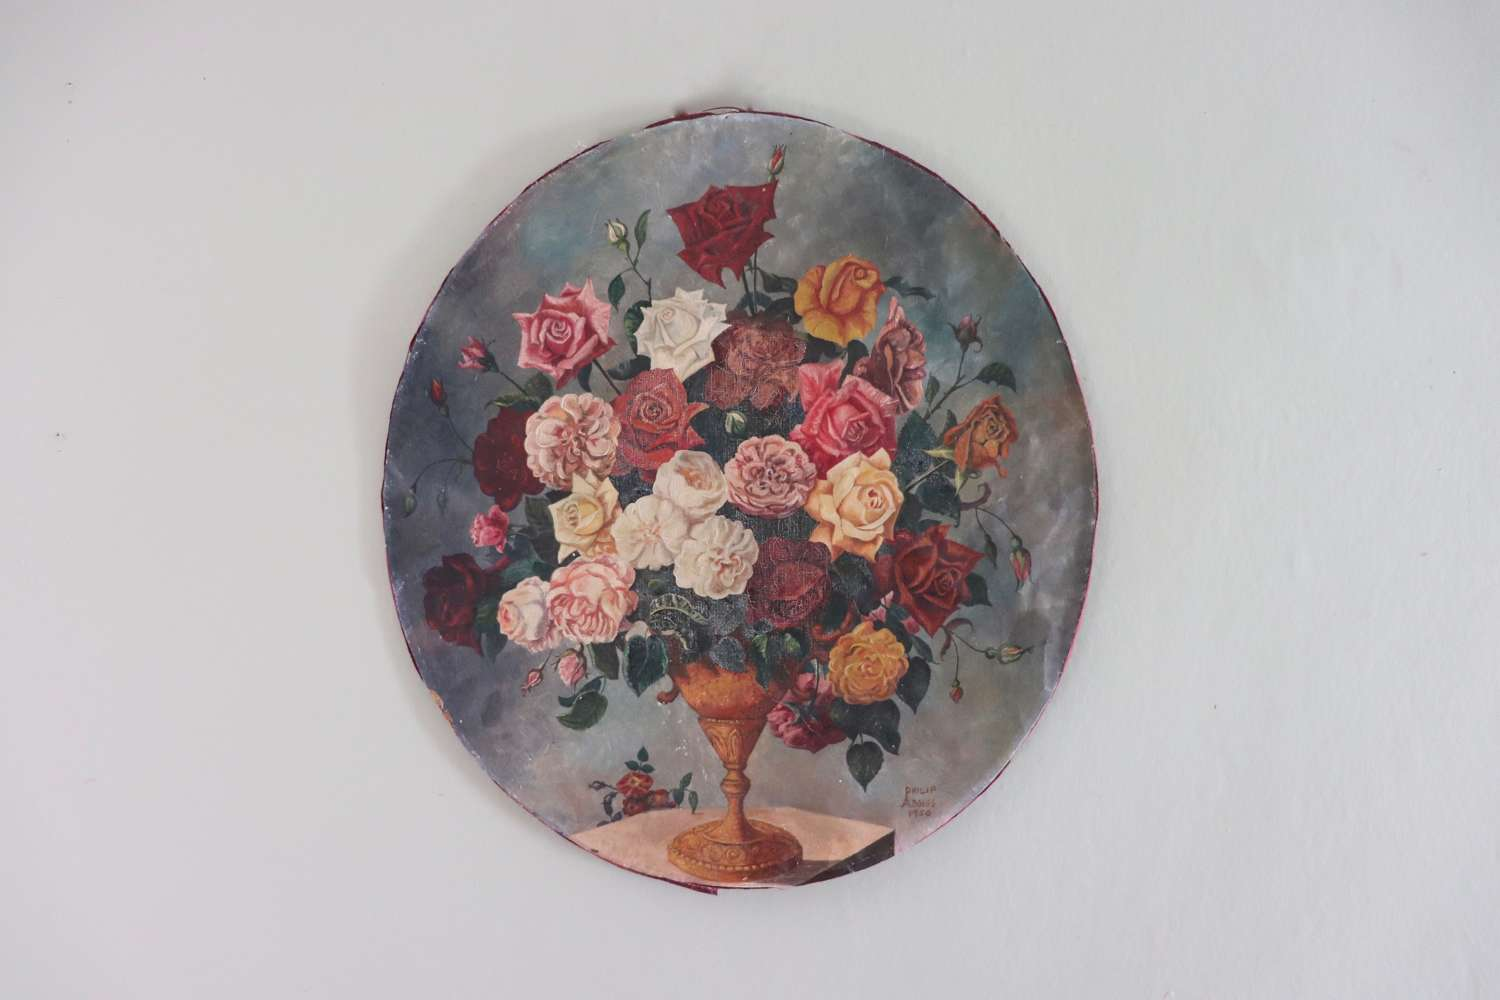 Signed oval oil painting of flowers in an urn